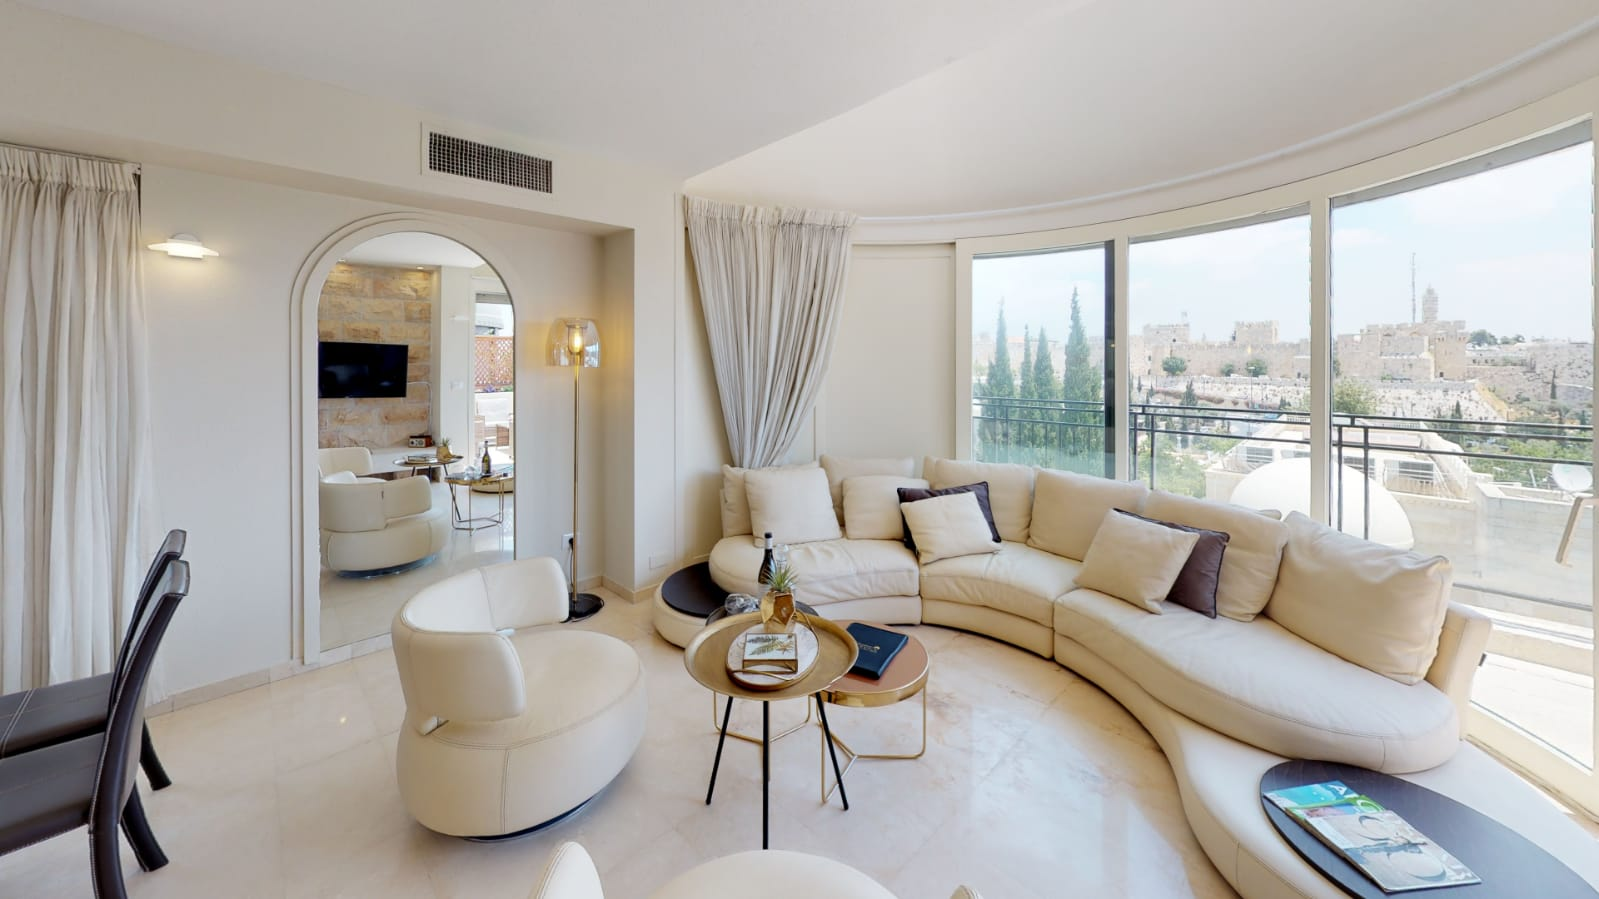 3.Old City views Luxury Mamilla 3 BR image #15